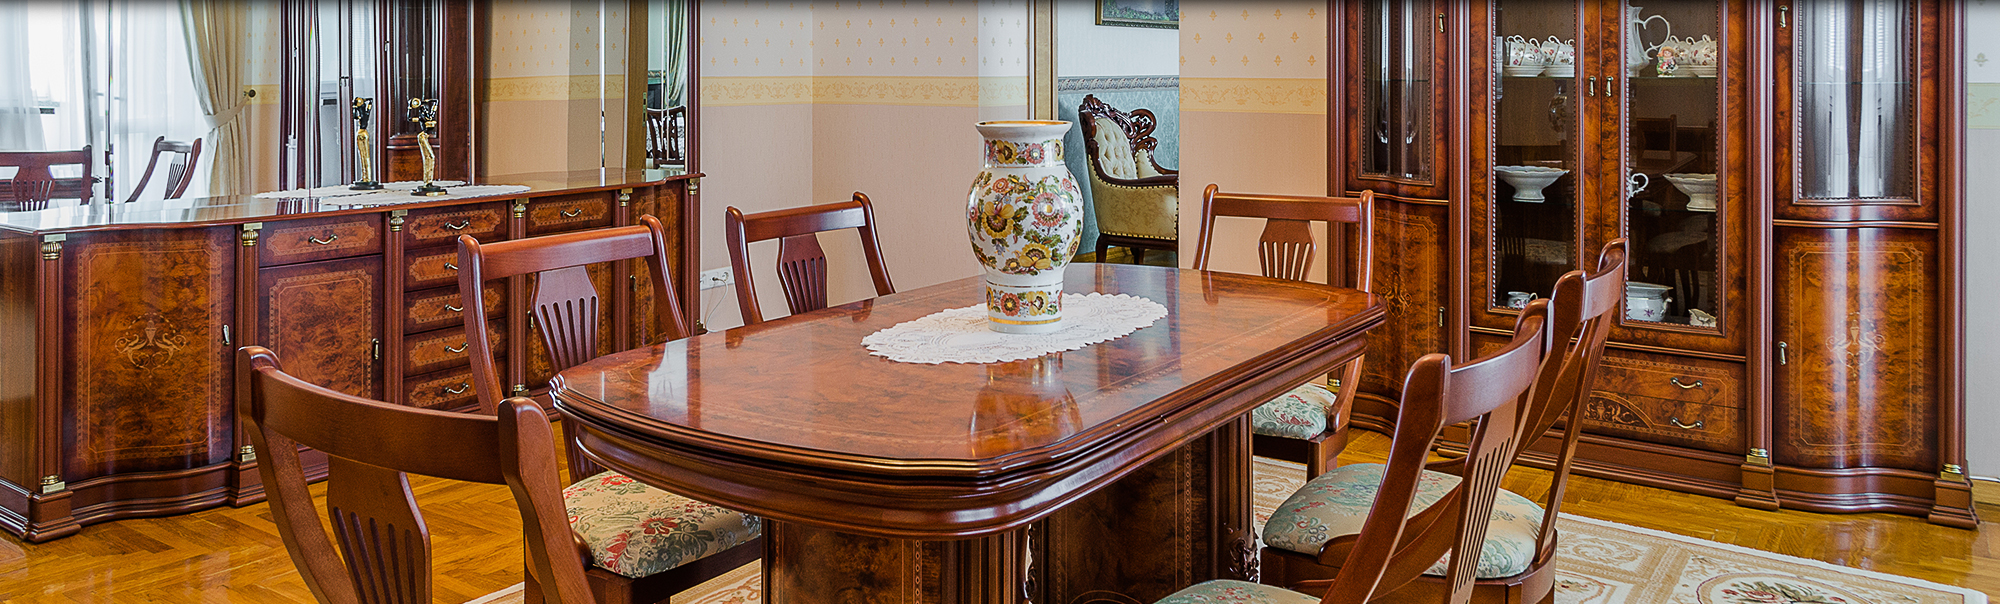 Terrific Furniture Repair Wood Refurbishing Davie Fl Gmtry Best Dining Table And Chair Ideas Images Gmtryco